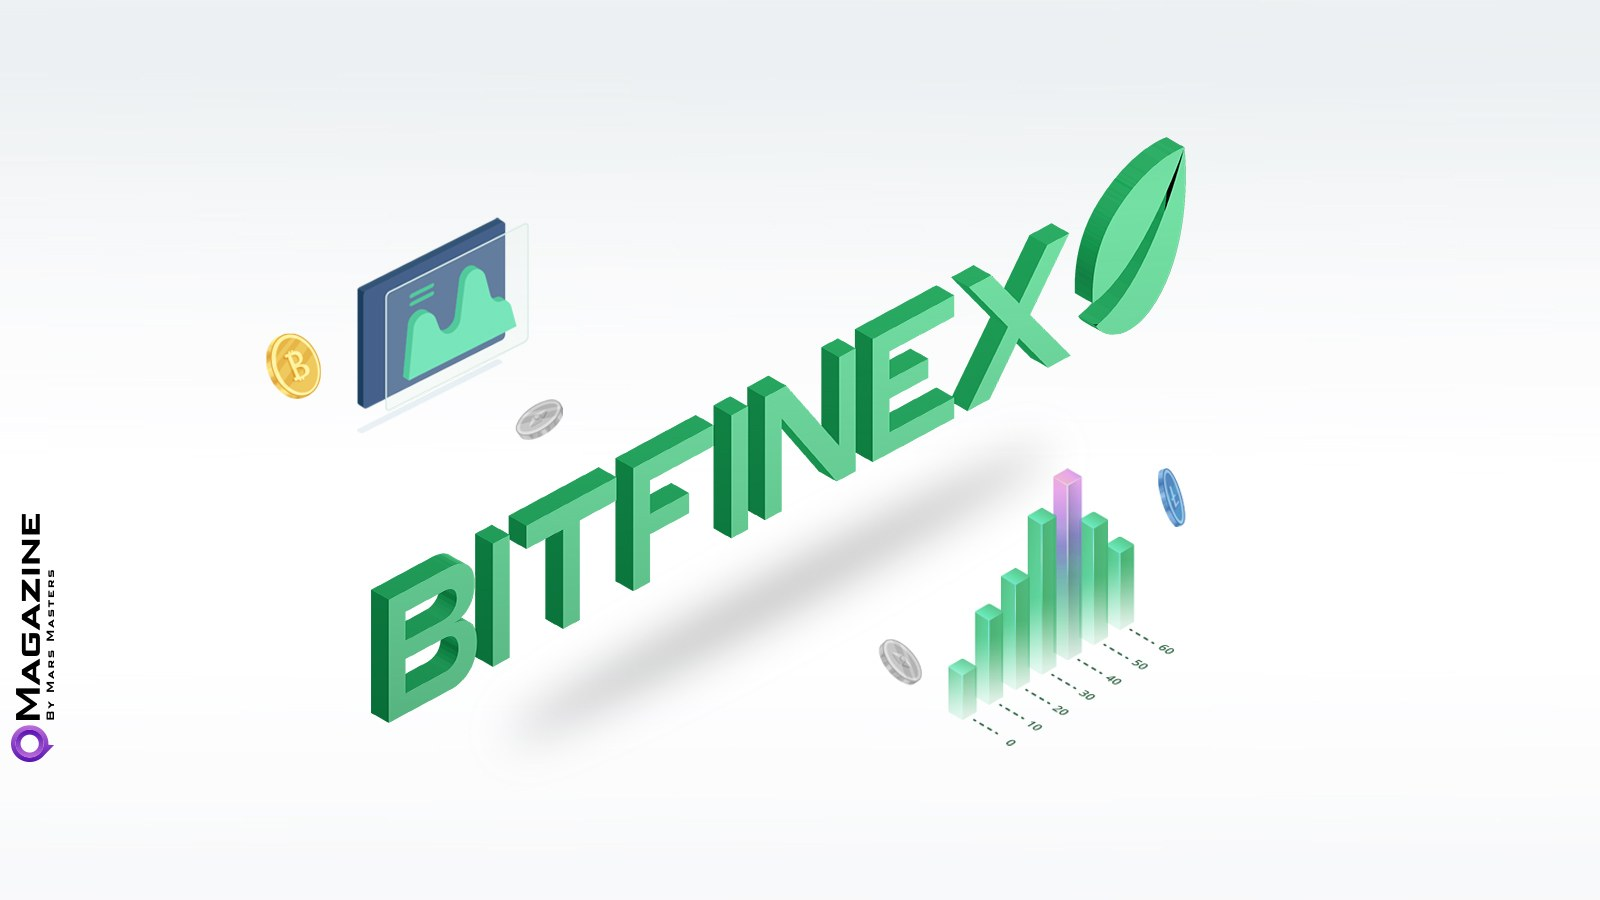 video of how to use bitfinex